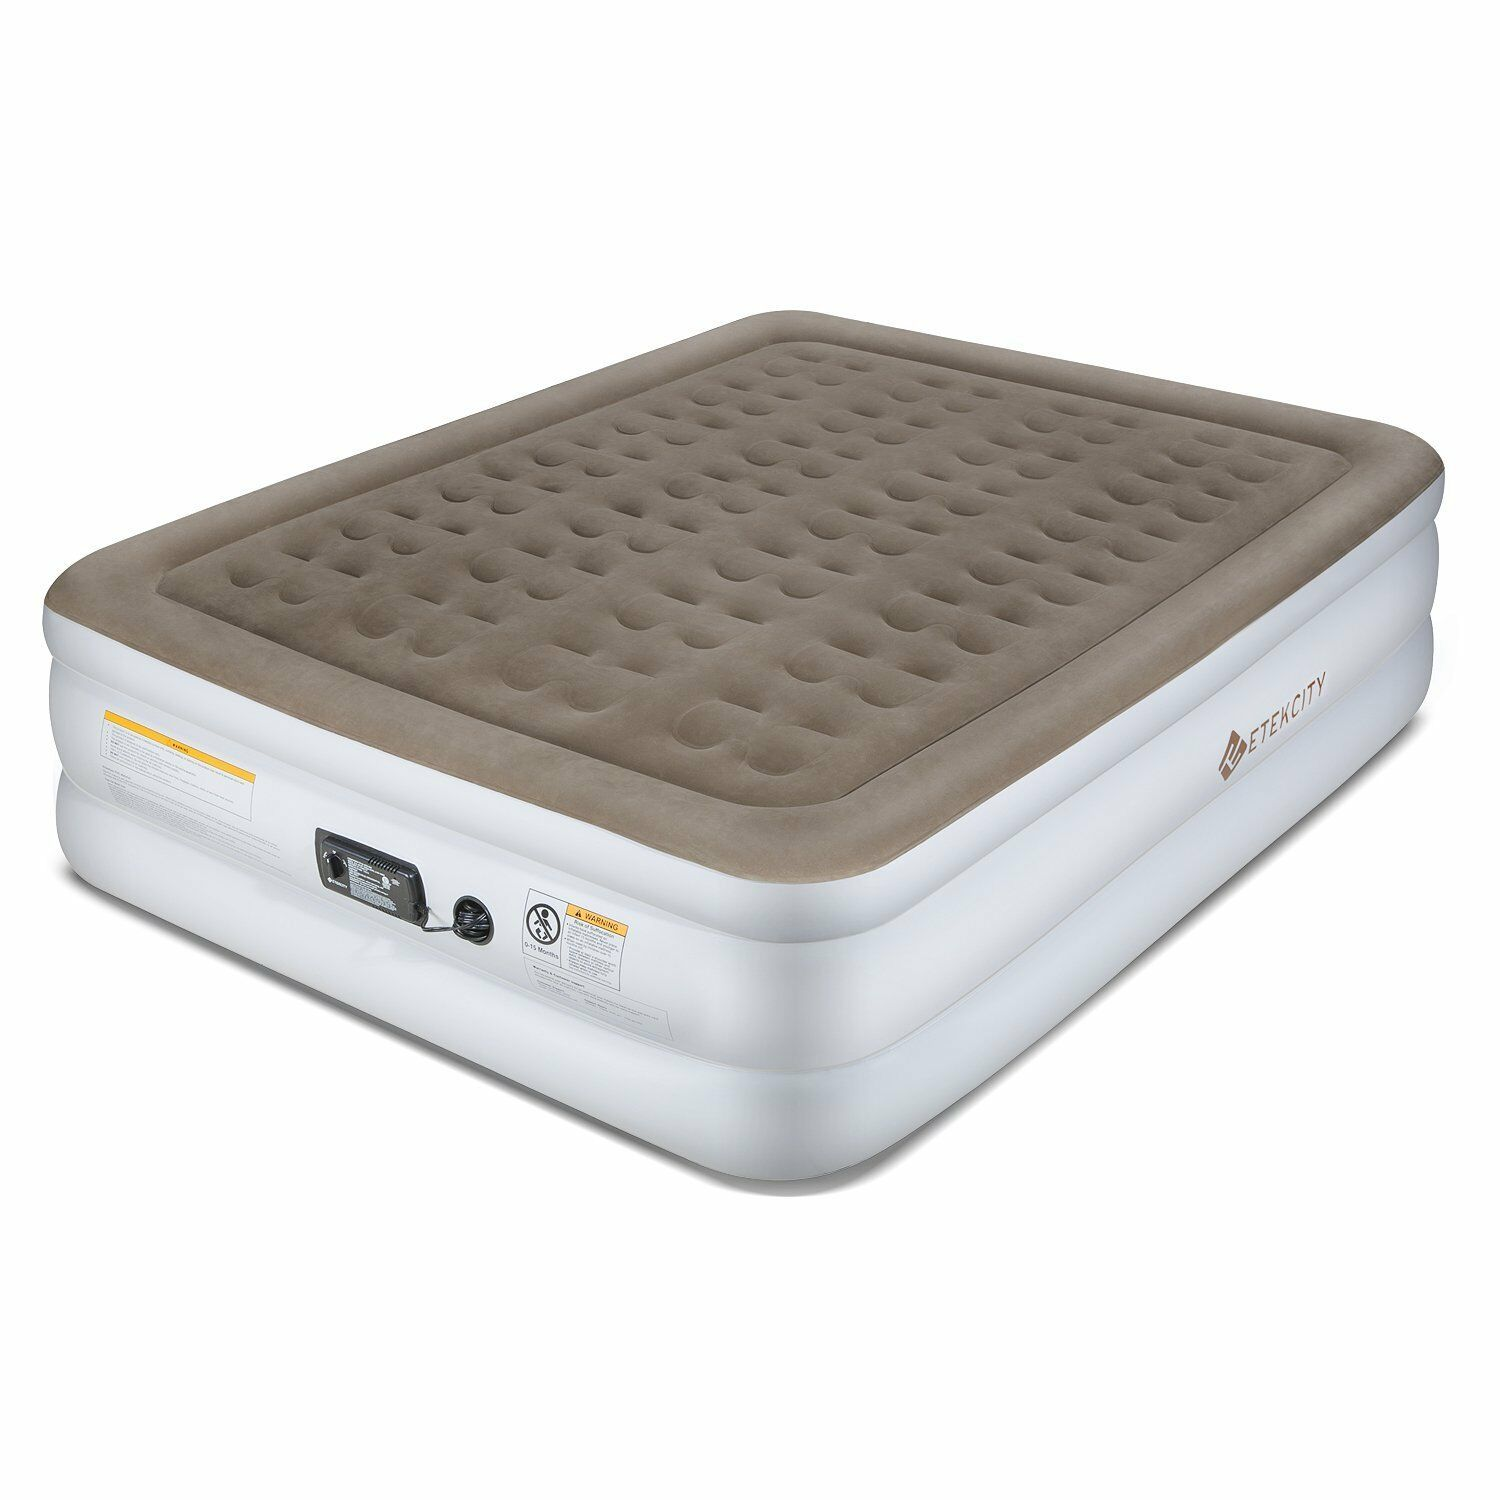 Queen Size Blow Up Inflatable mattress Bed With Built in Air